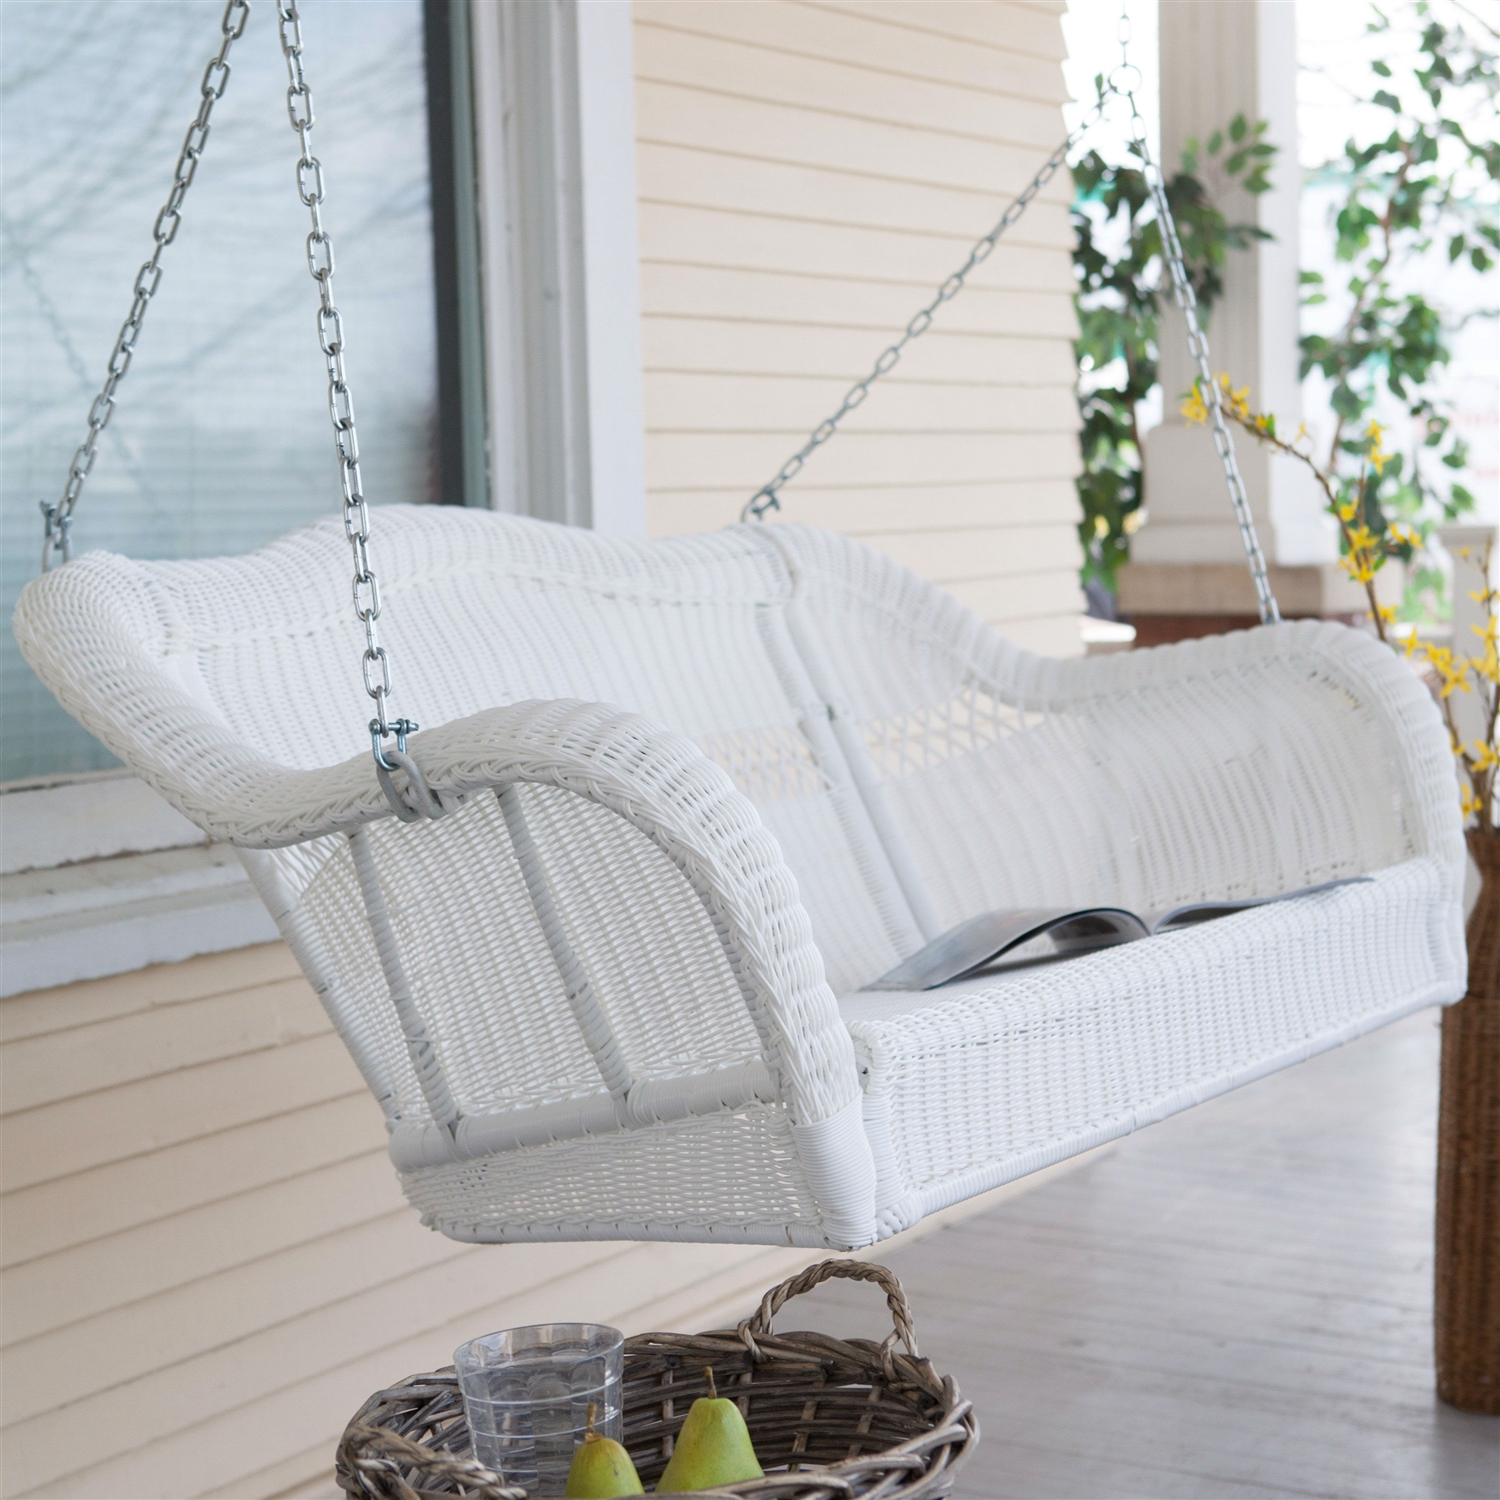 White Resin Wicker Porch Swing With Hanging Chain 600 Lb Weight